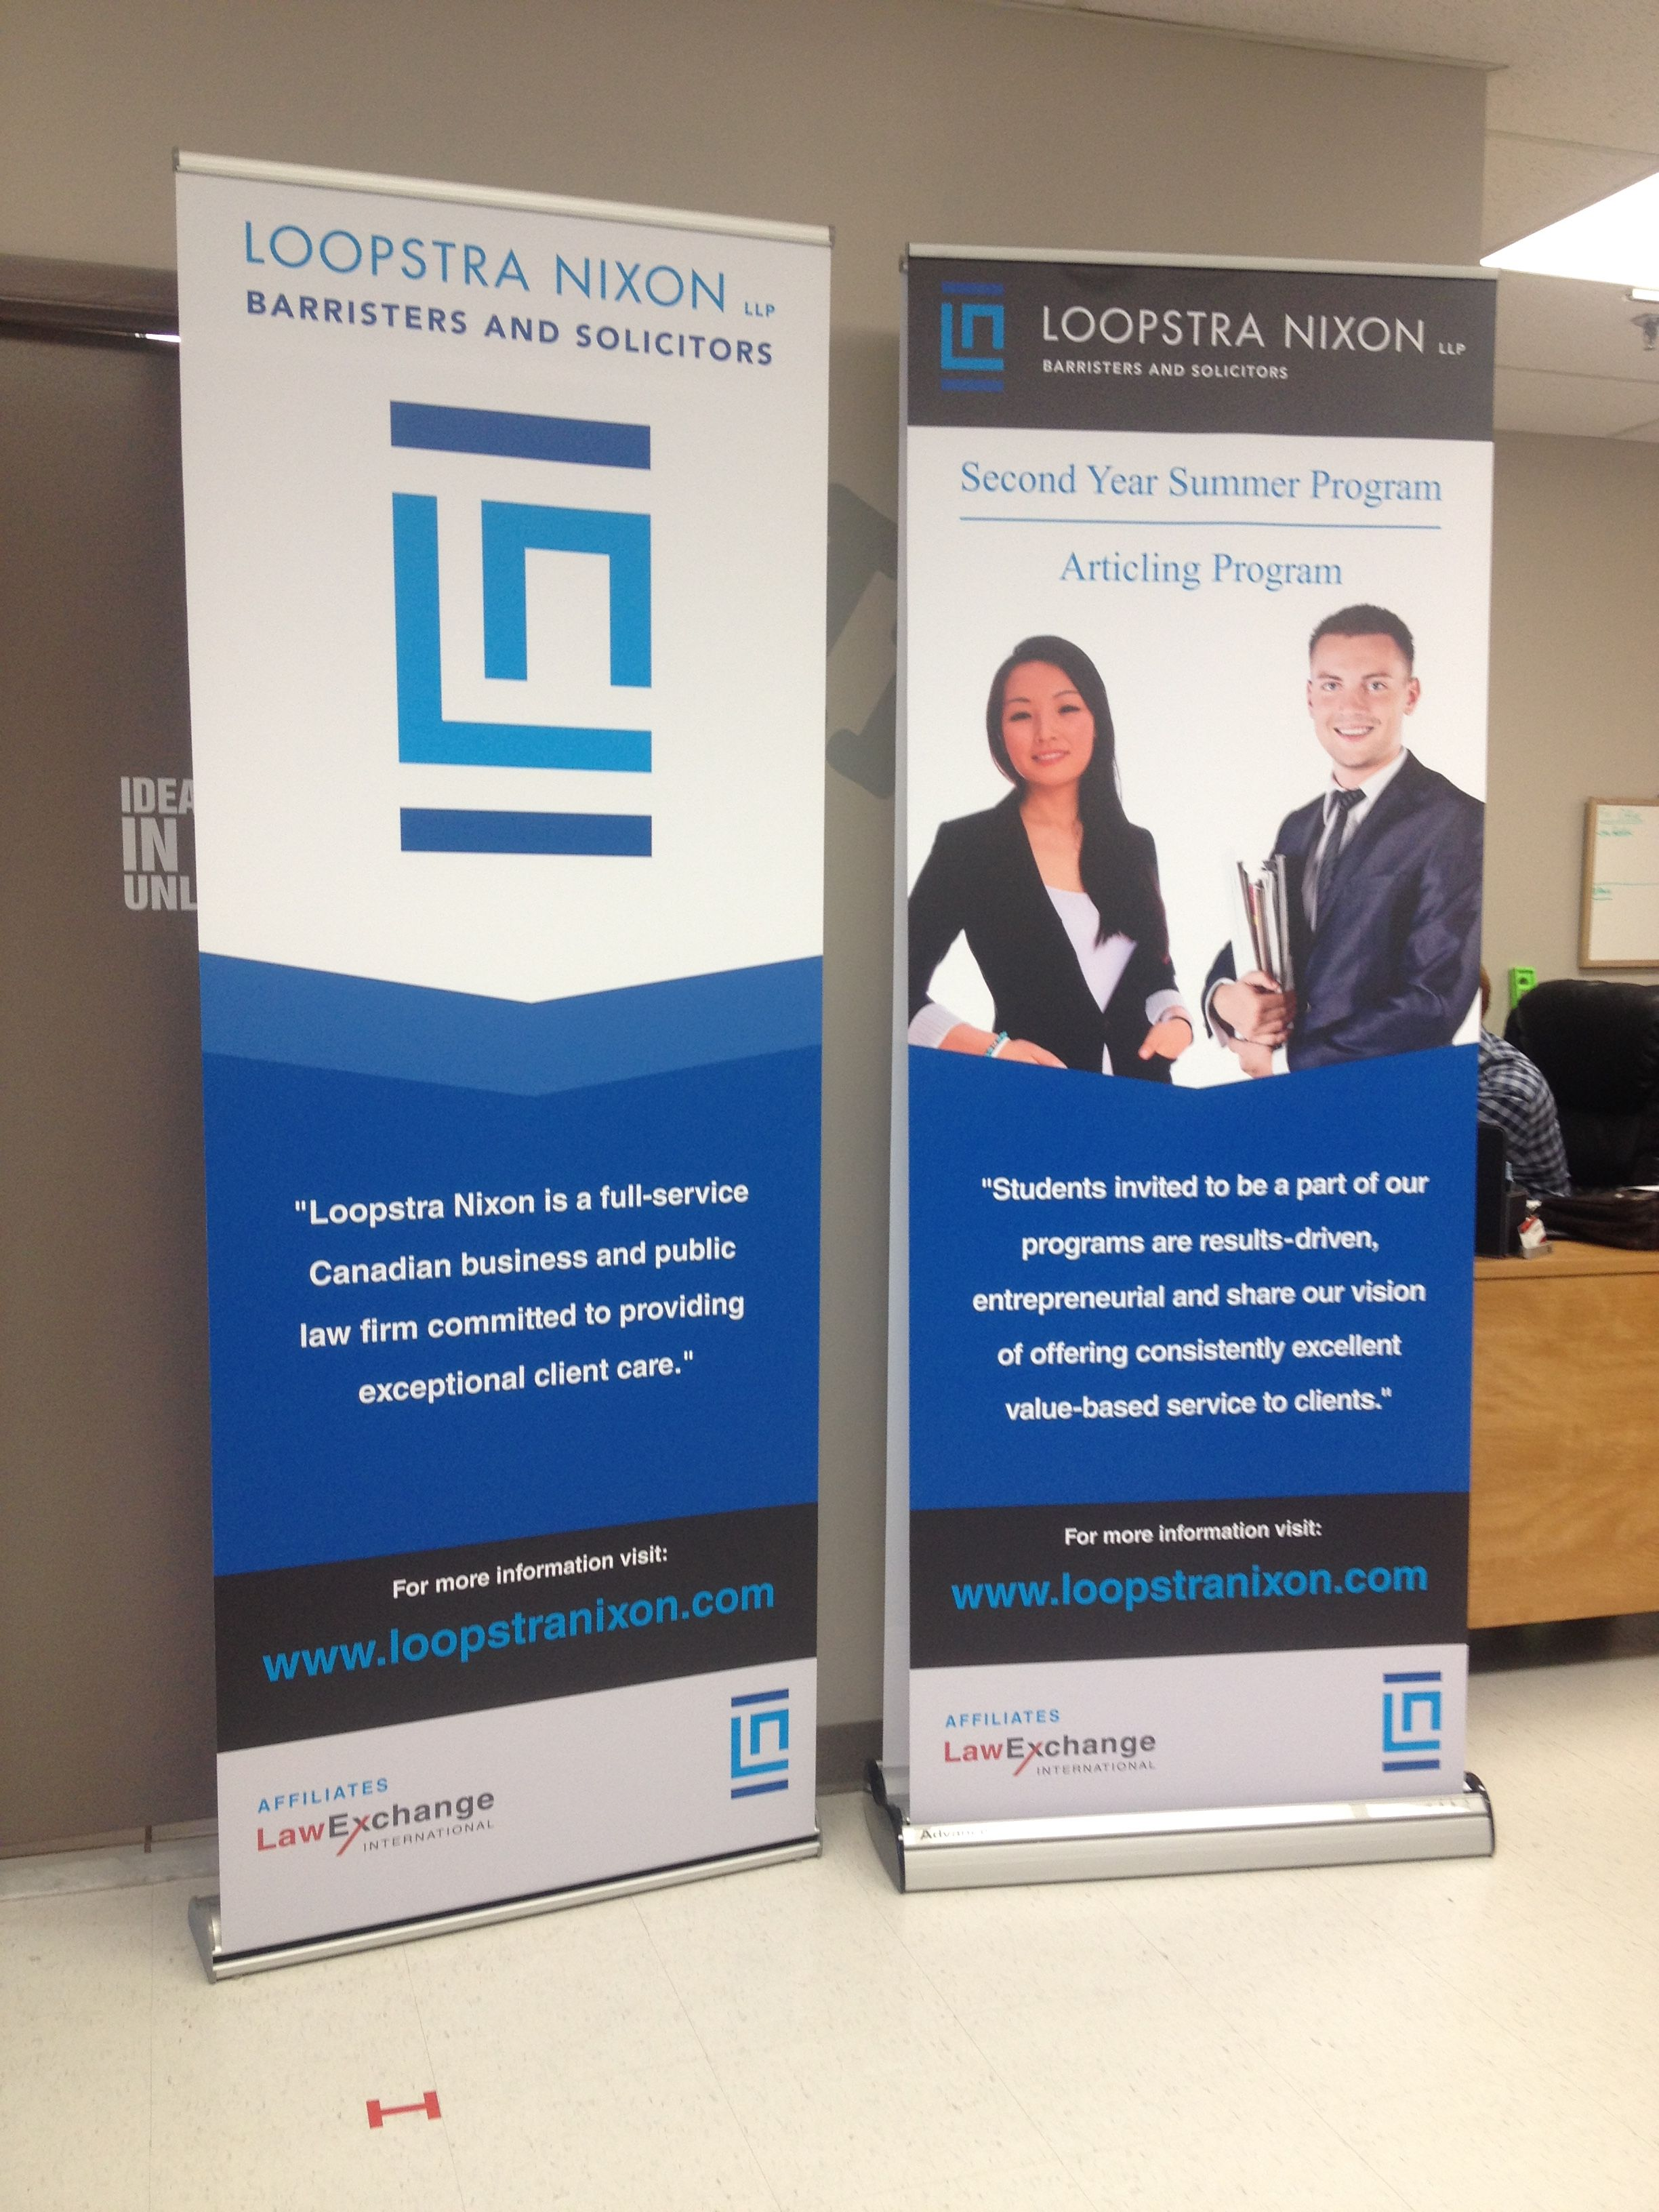 Advance 2 sided retractable banner completed by speedpro